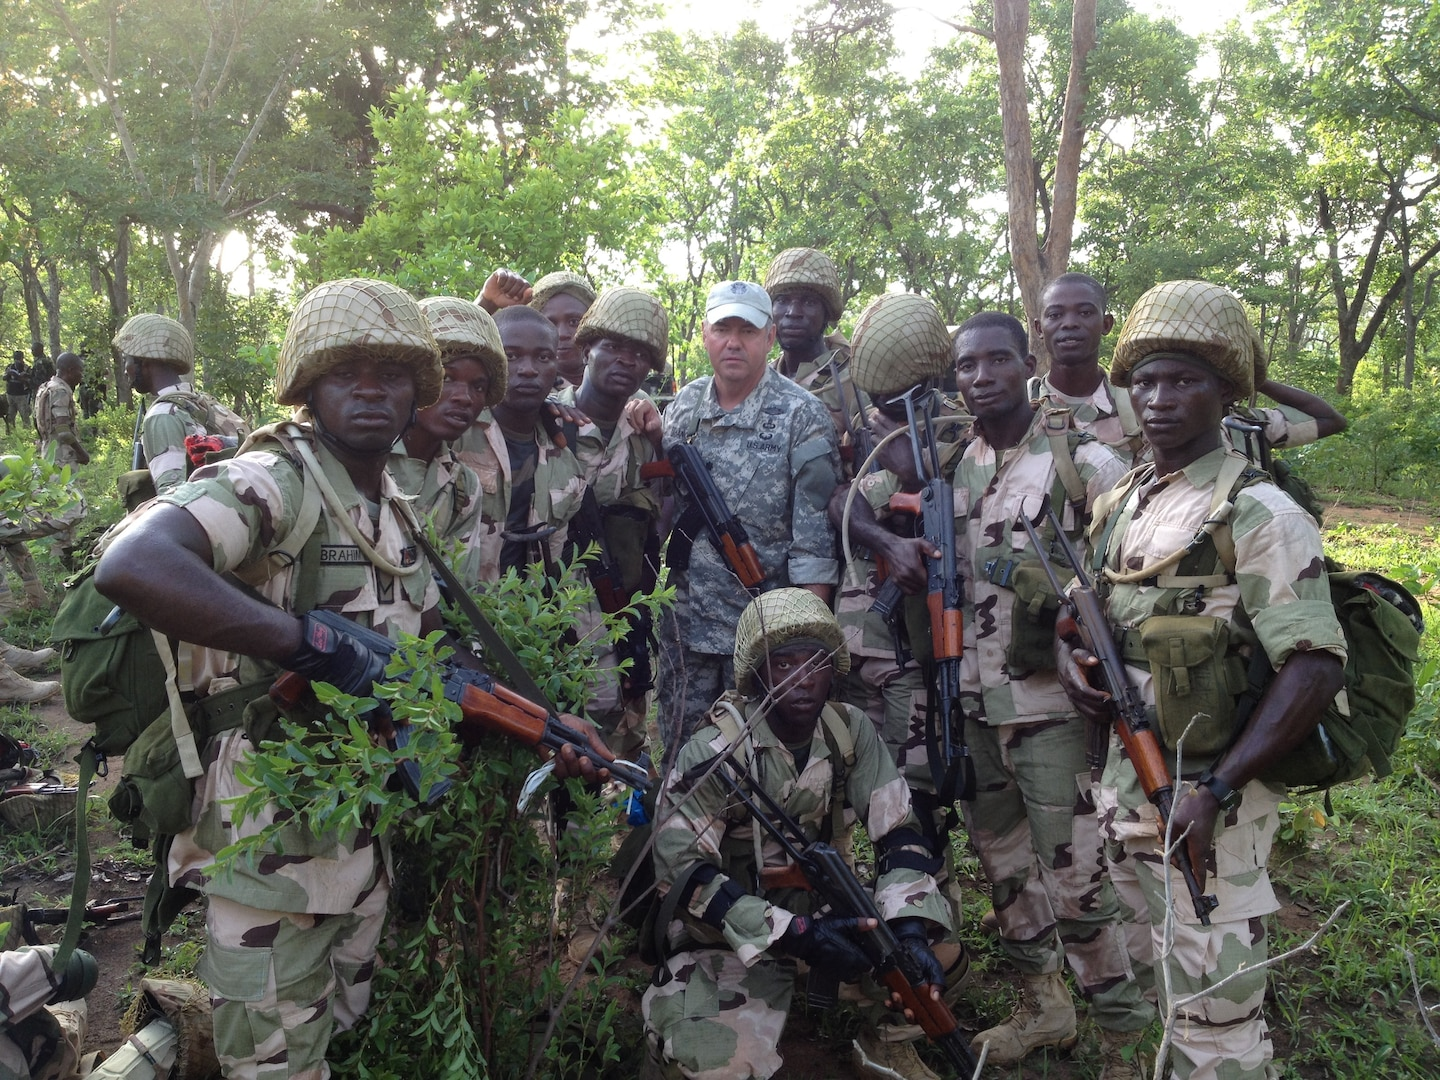 A California National Guard Special Forces soldier from Los Alamitos-based Special Operations Detachment-U.S. Northern Command and Company A, 5th Battalion, 19th Special Forces Group (Airborne), poses with Nigerian soldiers on May 31, 2014, during a training mission in Nigeria.